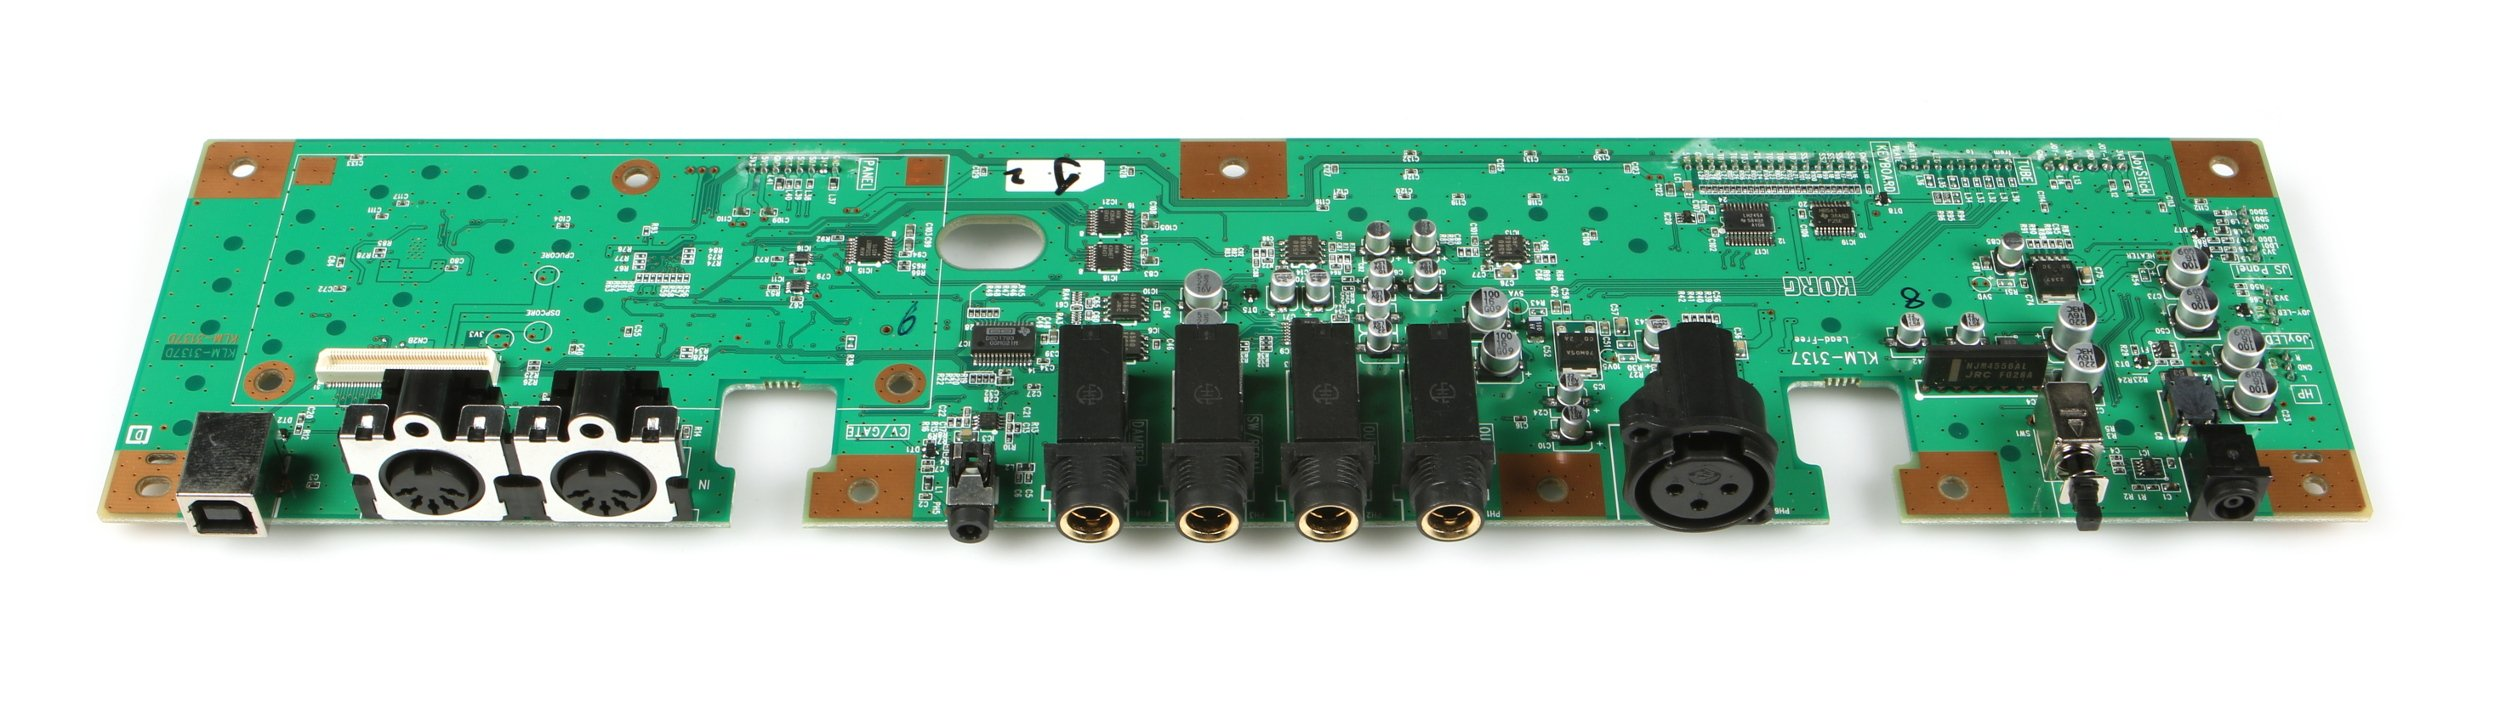 KLM-3137 PCB Assembly for KingKorg